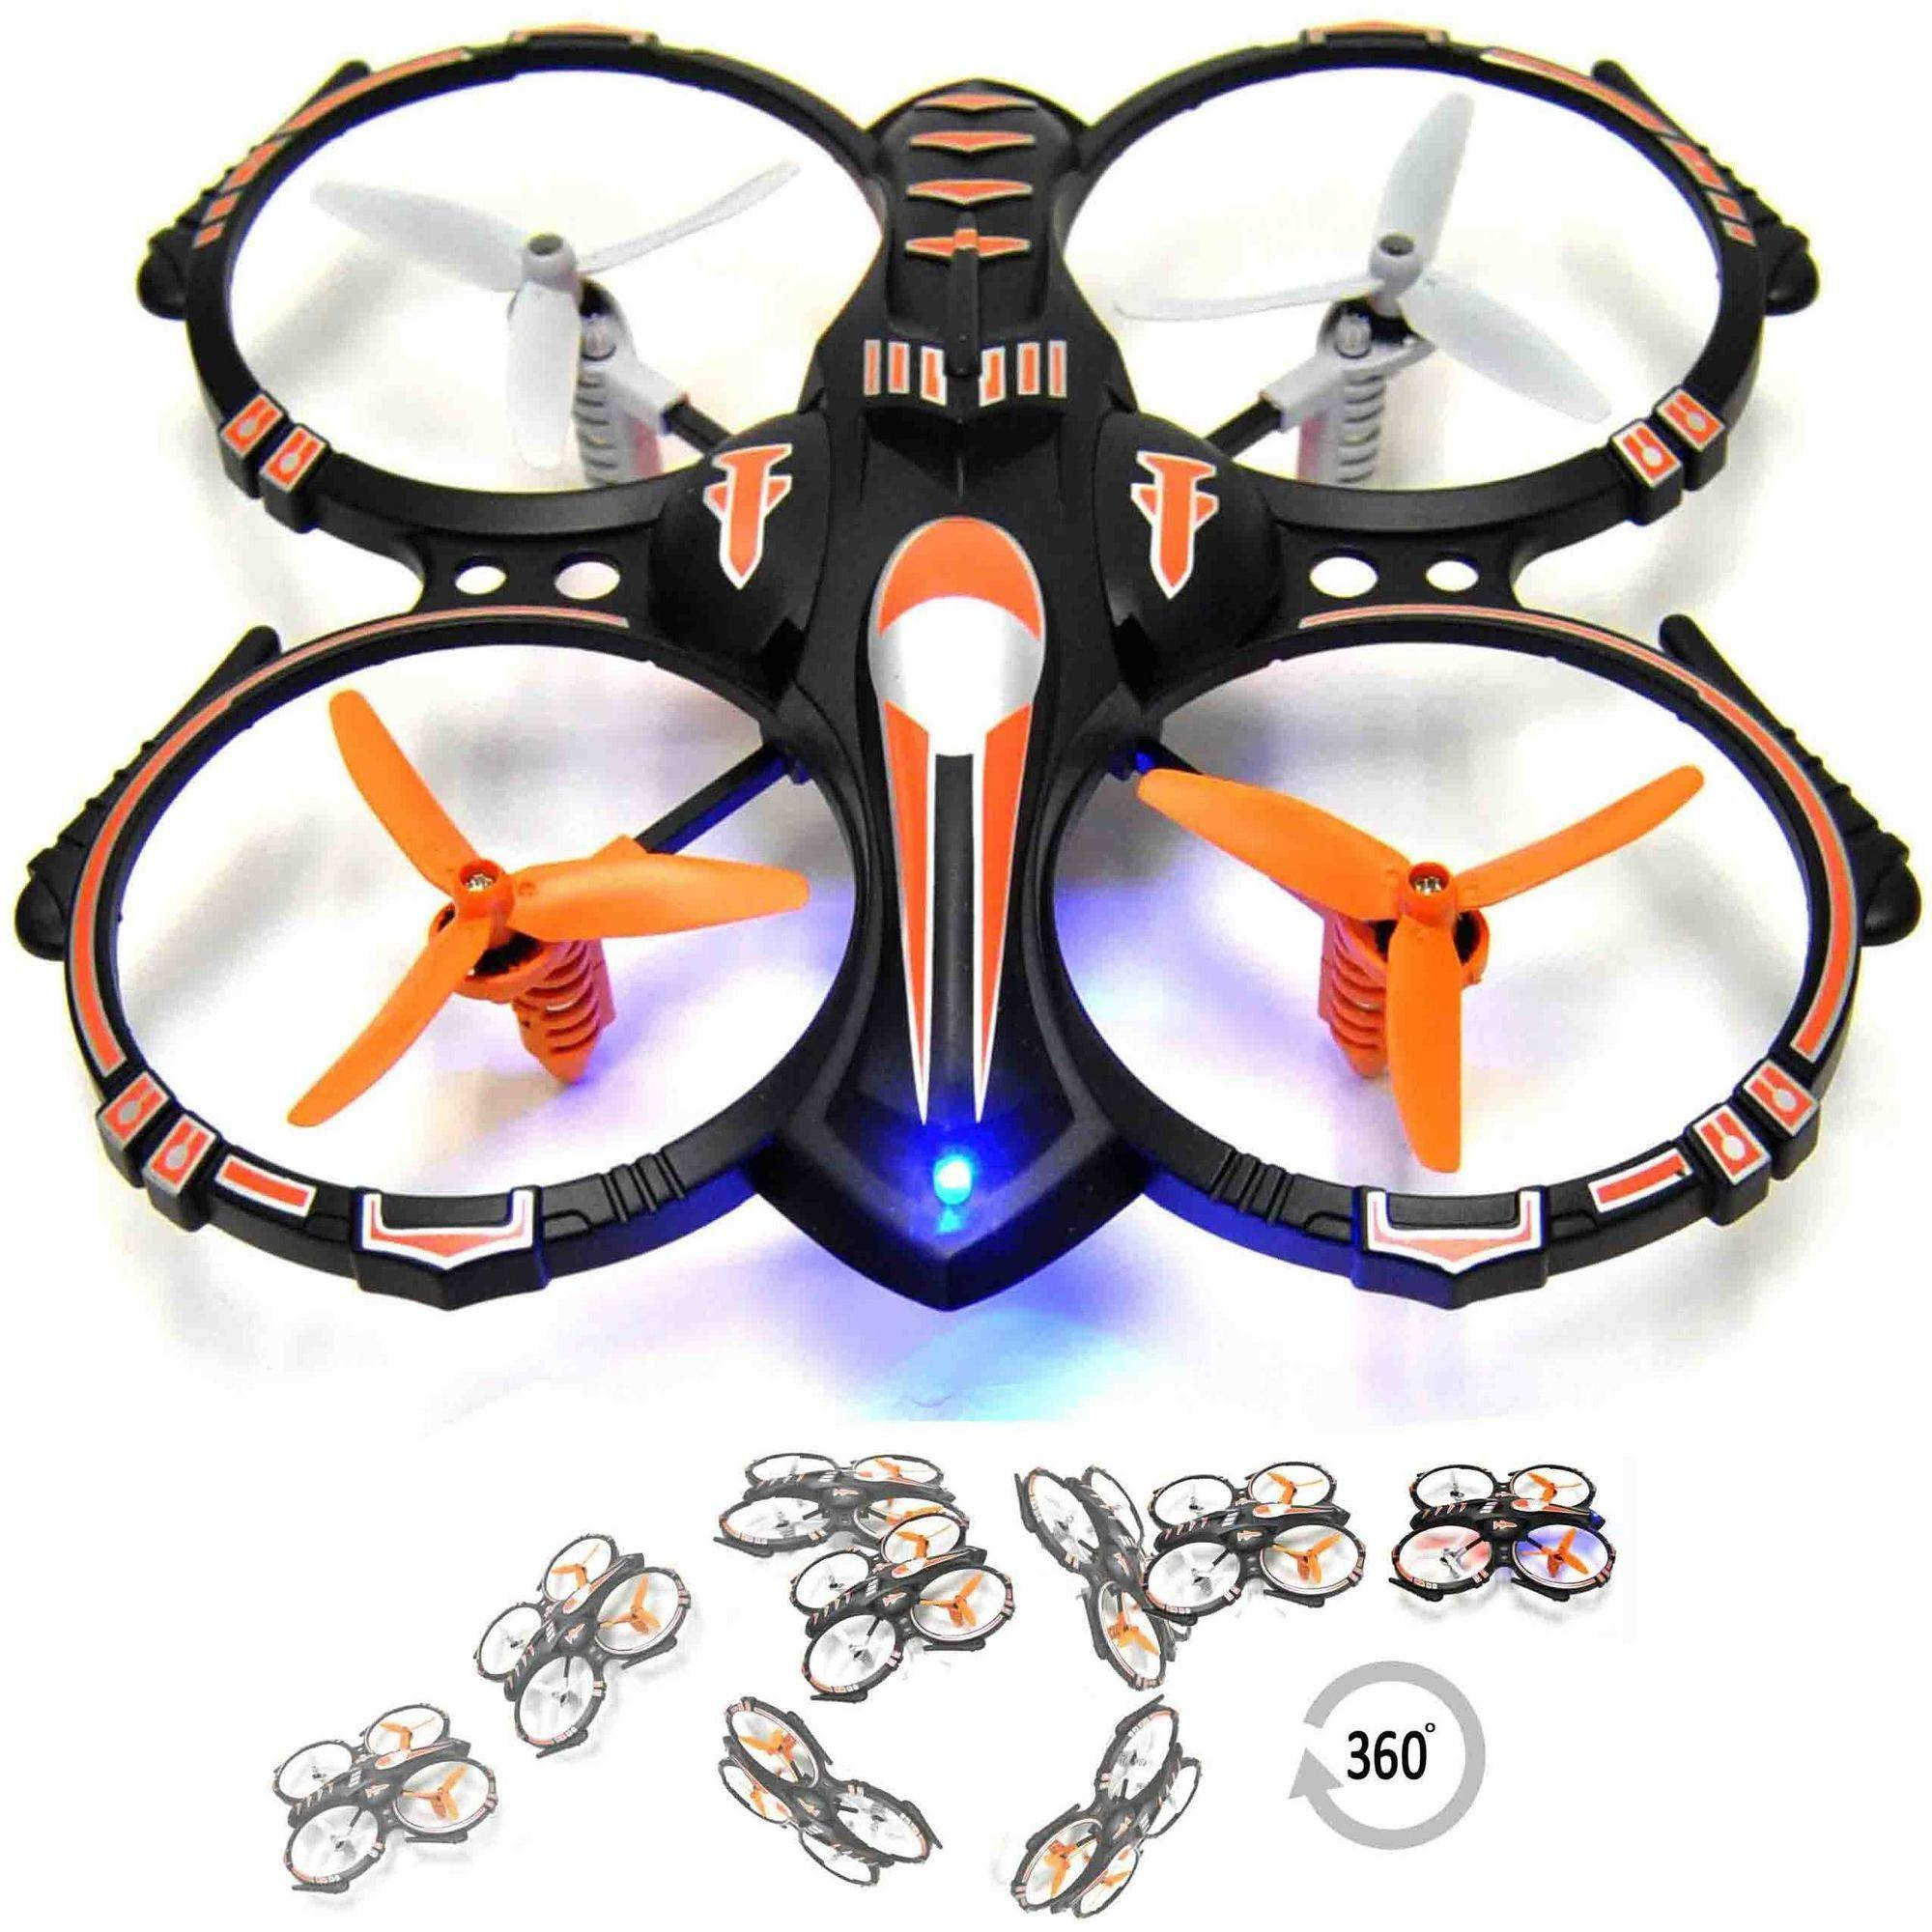 RC 4-Channel 2.4GHz Stunt Drone Quadcopter with 360 Flip